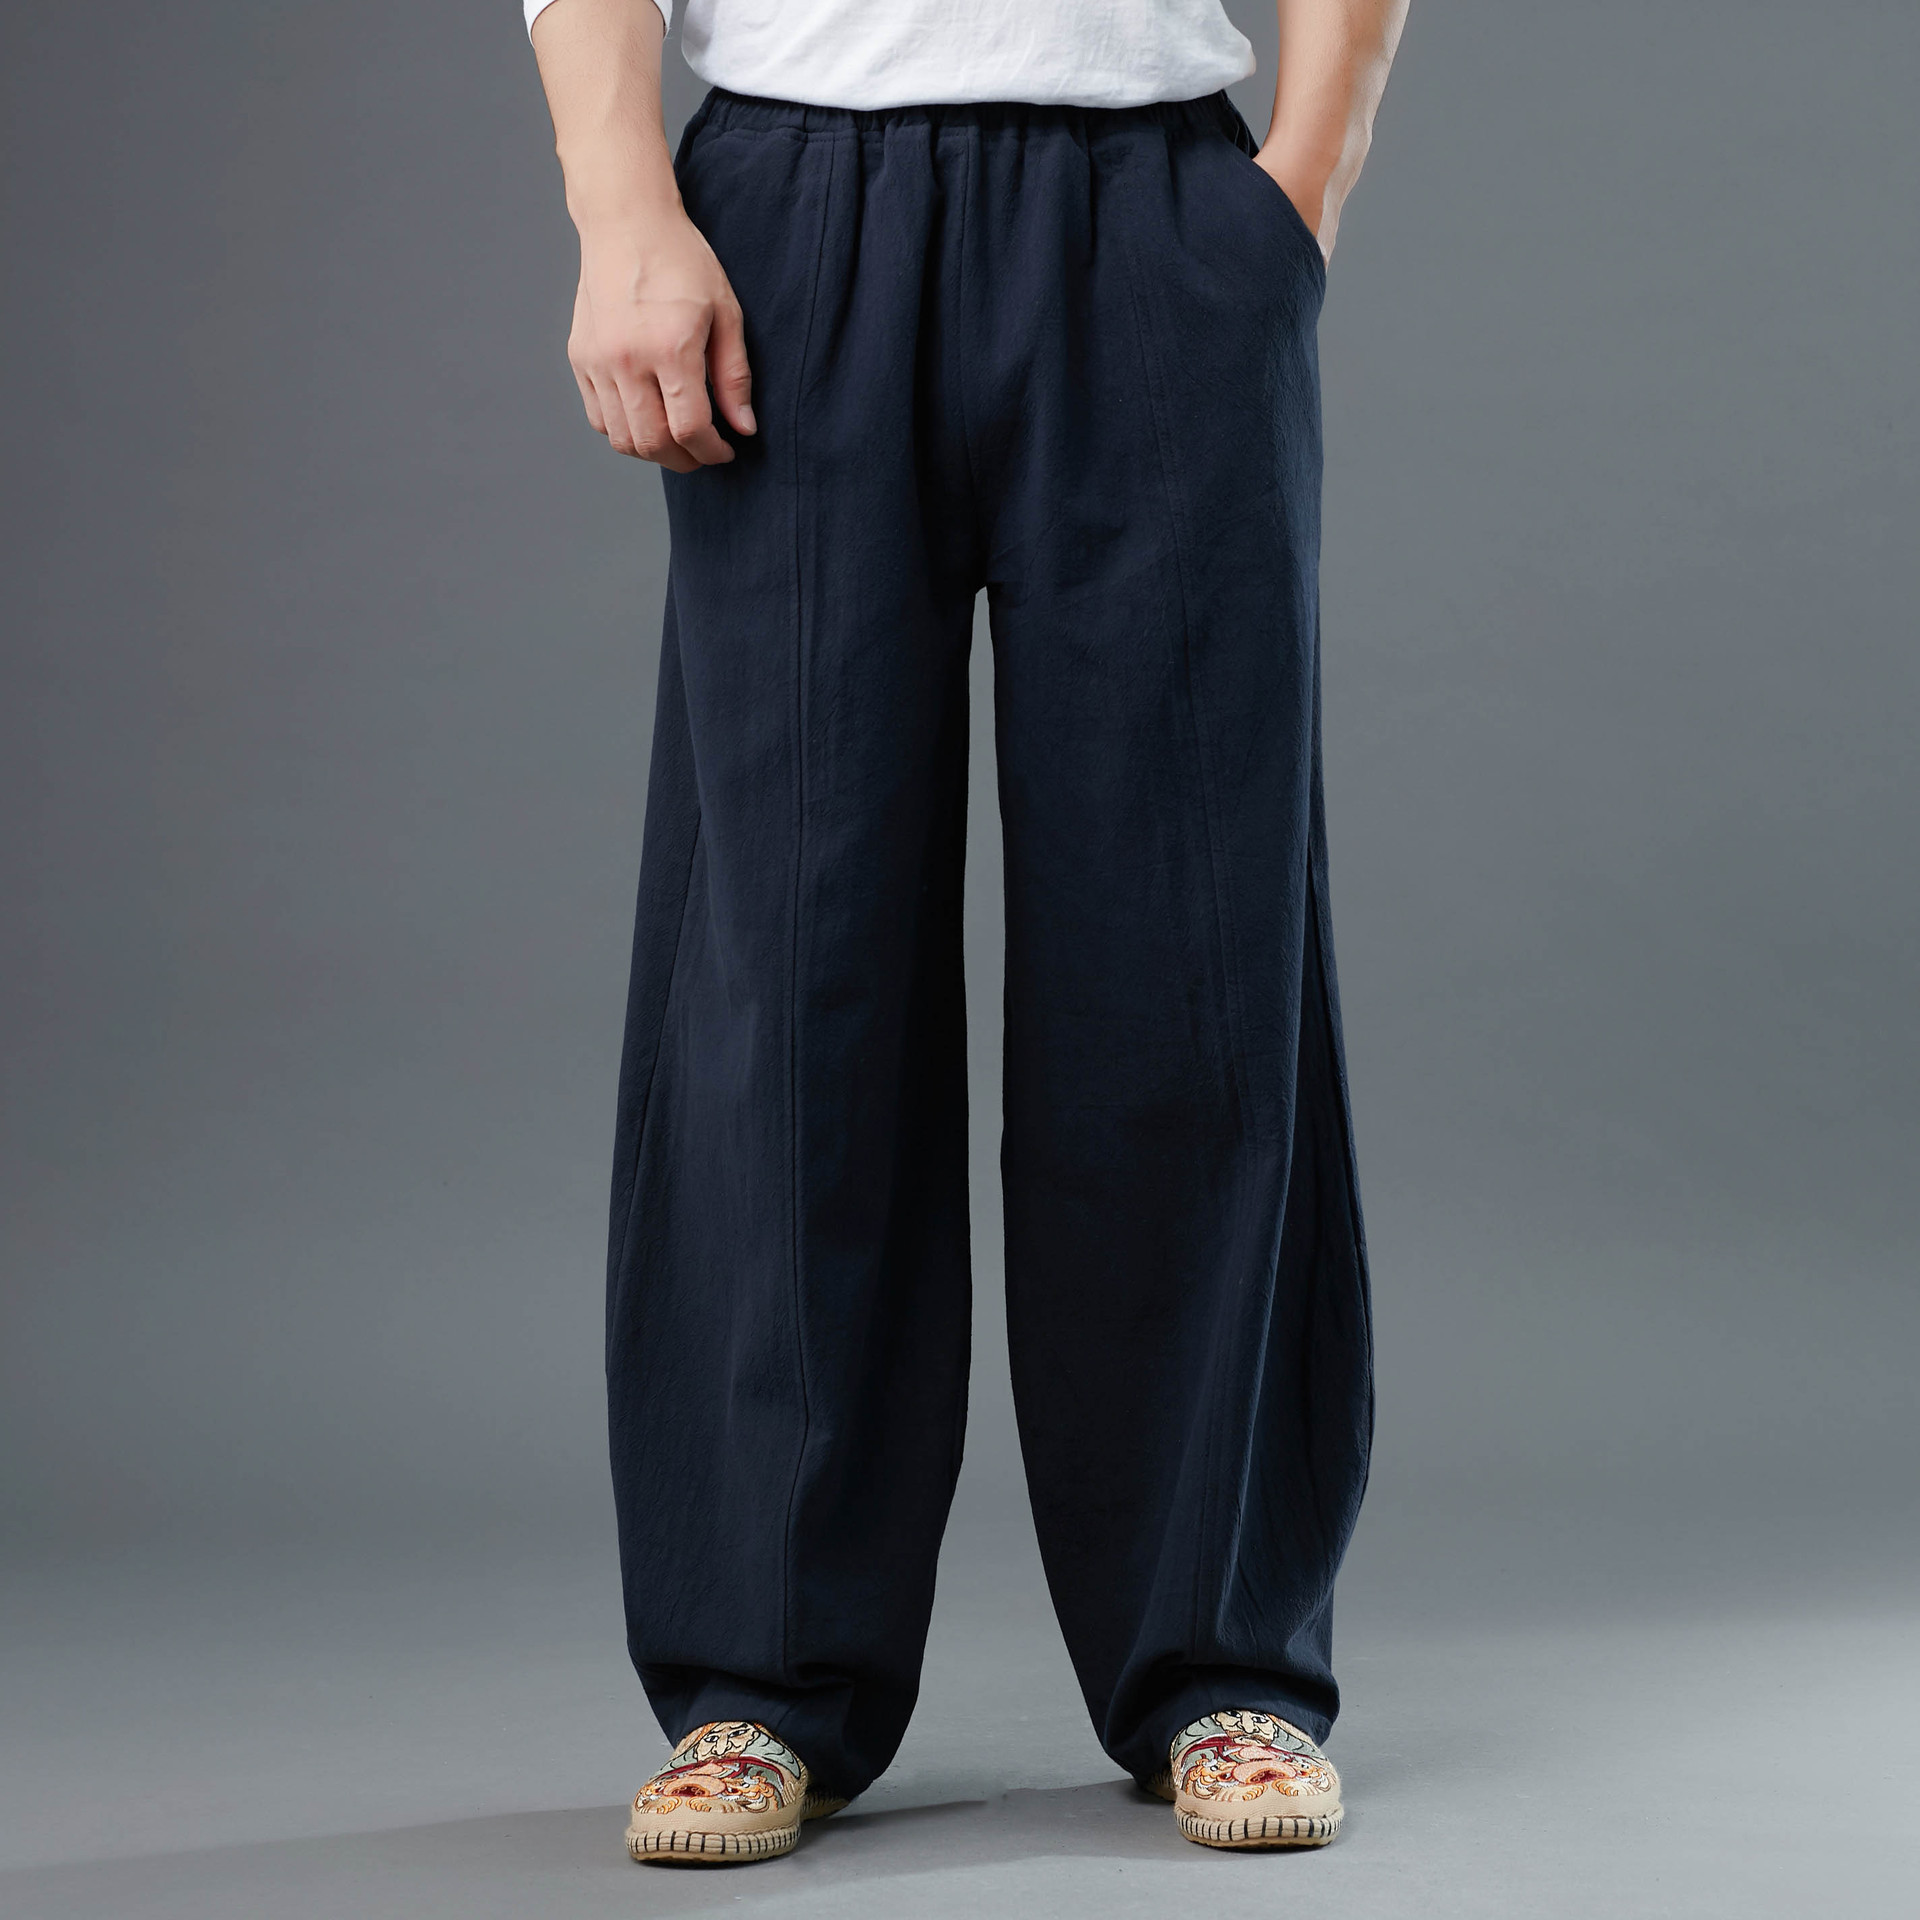 19 New Style Meniscus MEN'S Casual Pants Nation Chinese-style Straight-Cut Casual Pants Ji Li Wen Linen And Cotton Creative-